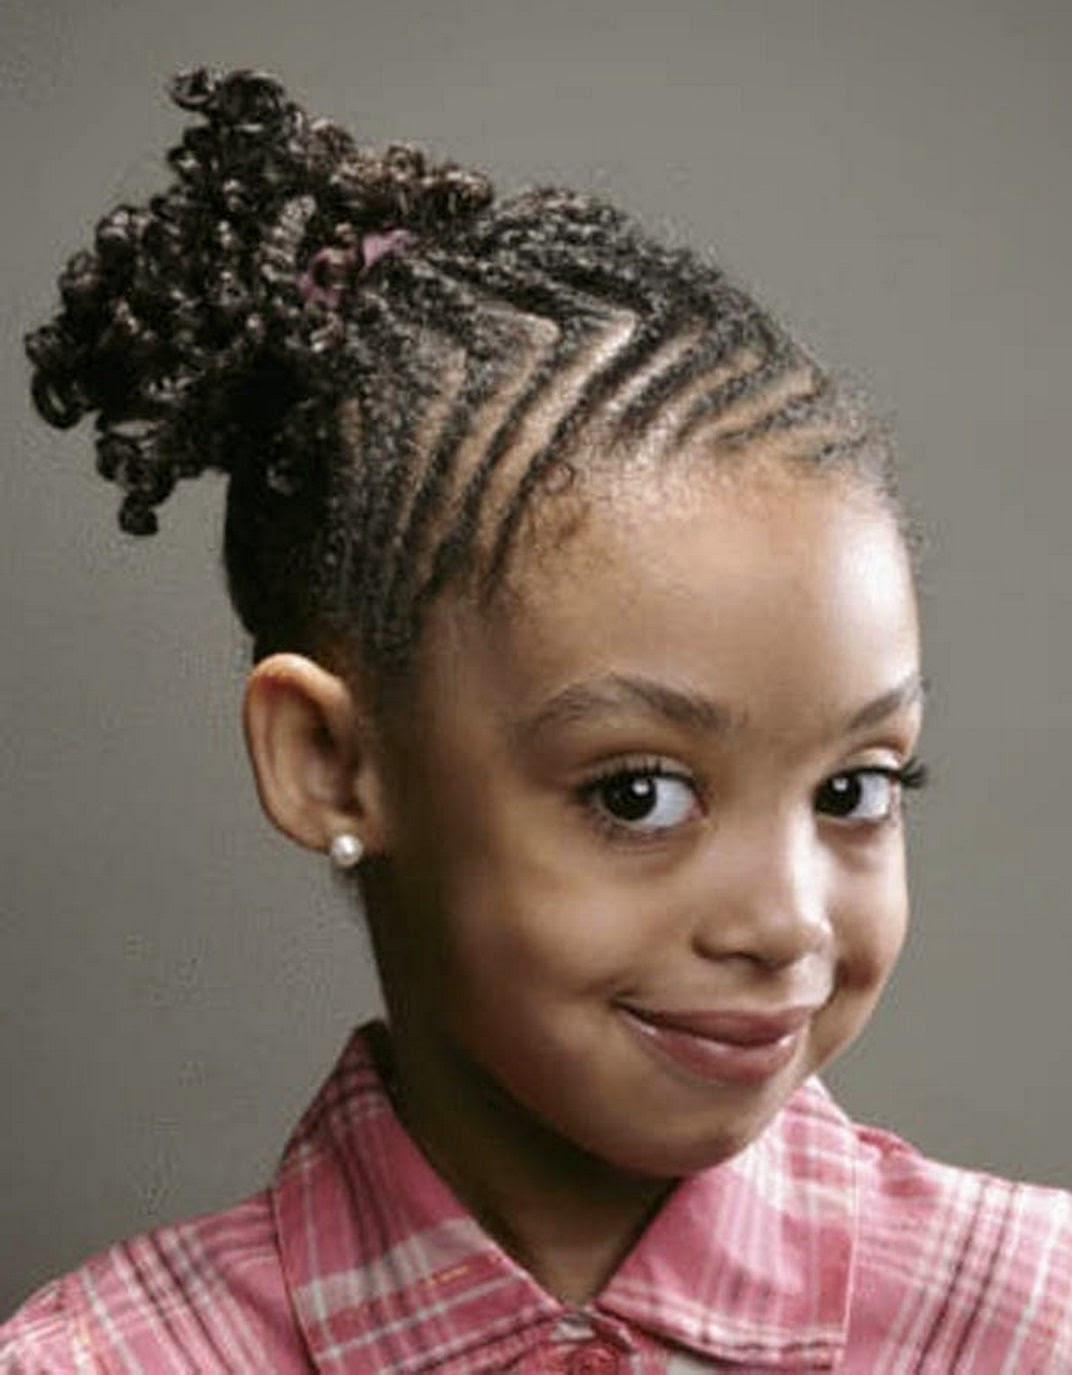 Best ideas about Cute Hairstyles For Black Toddlers . Save or Pin Hairstyles For Black Children Now.